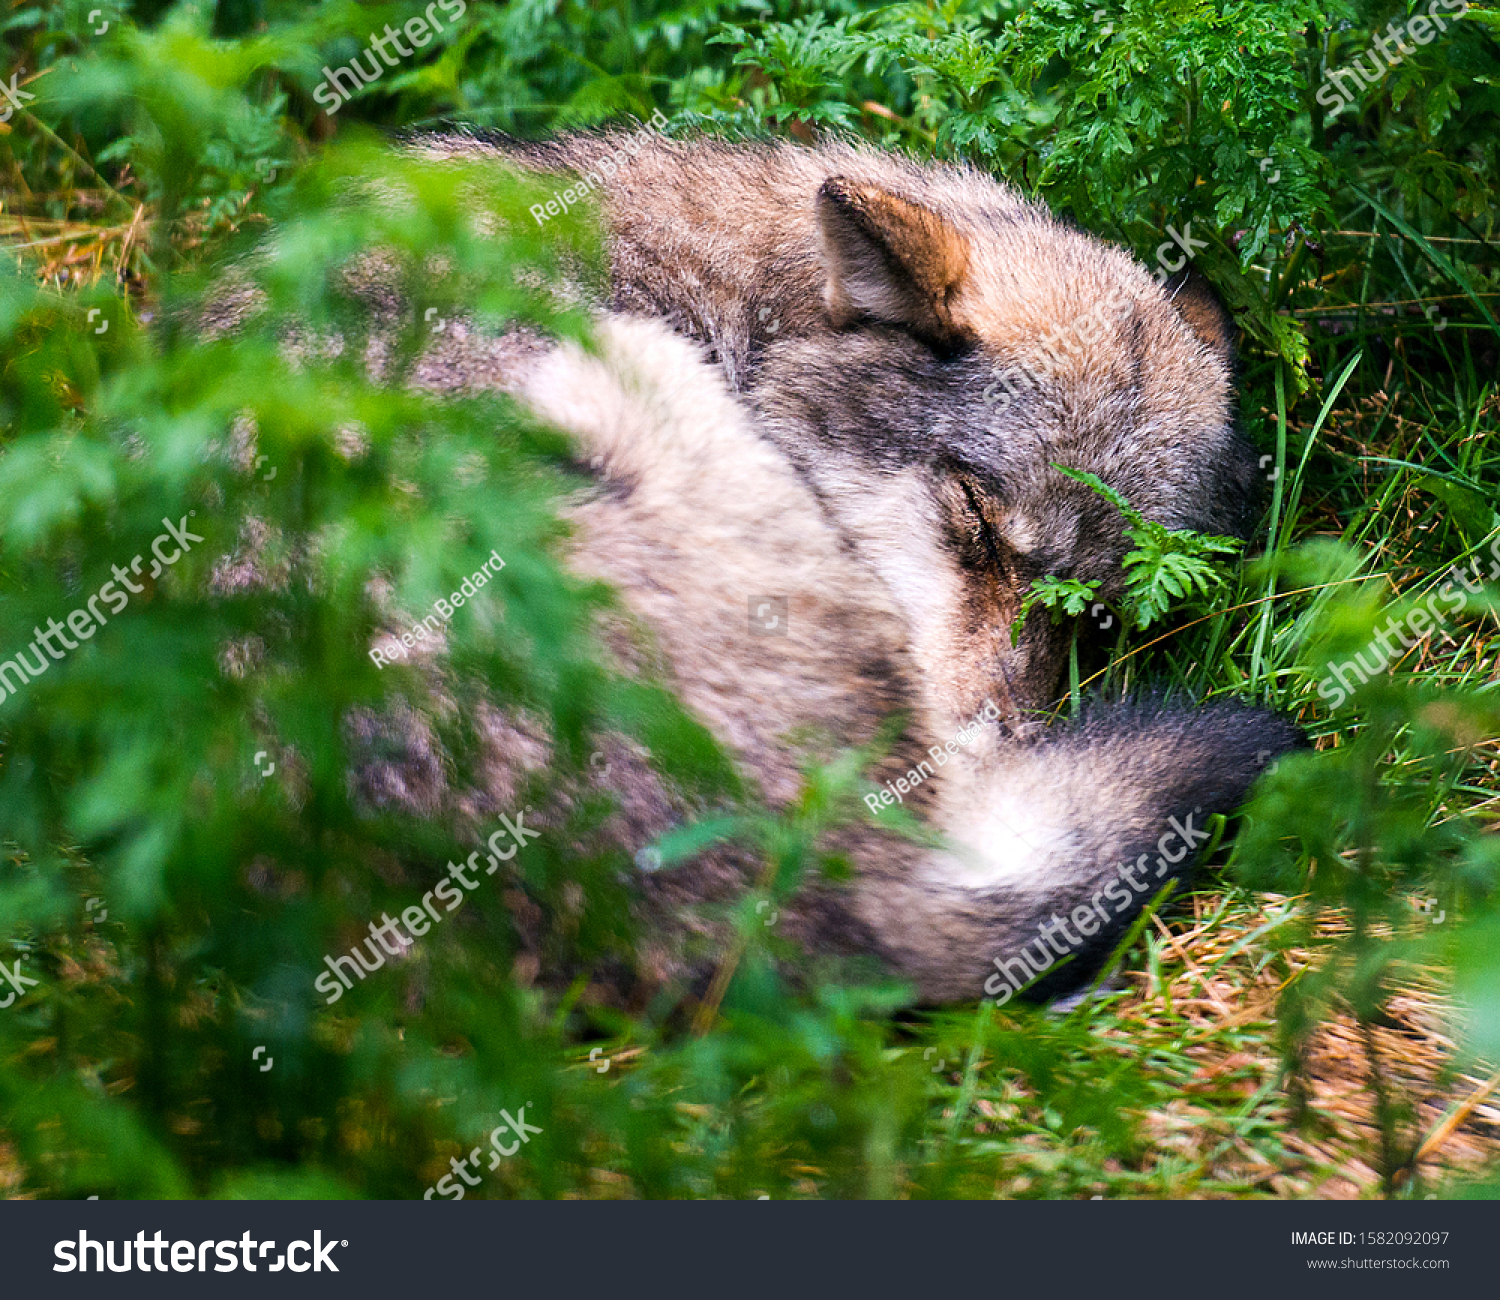 Wolf animal close-up profile view sleeping with a foreground and background foliage focus at the background  in the forest displaying displaying its fur coat, ears, close eyes, tail.   #1582092097